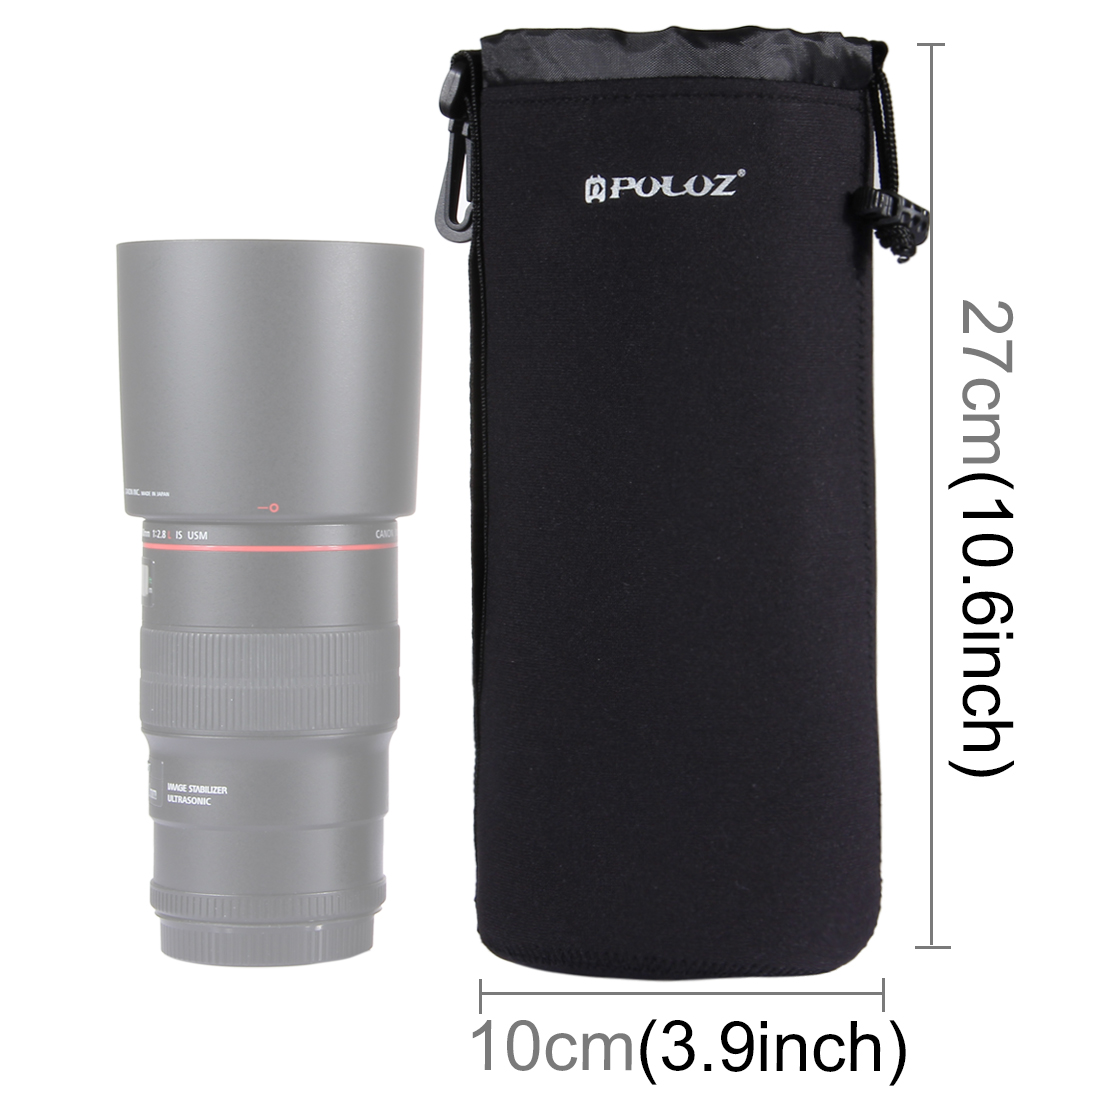 Universal Nylon Lens Protective Carrying Bag with Hook for Canon Nikon Sony Lens black